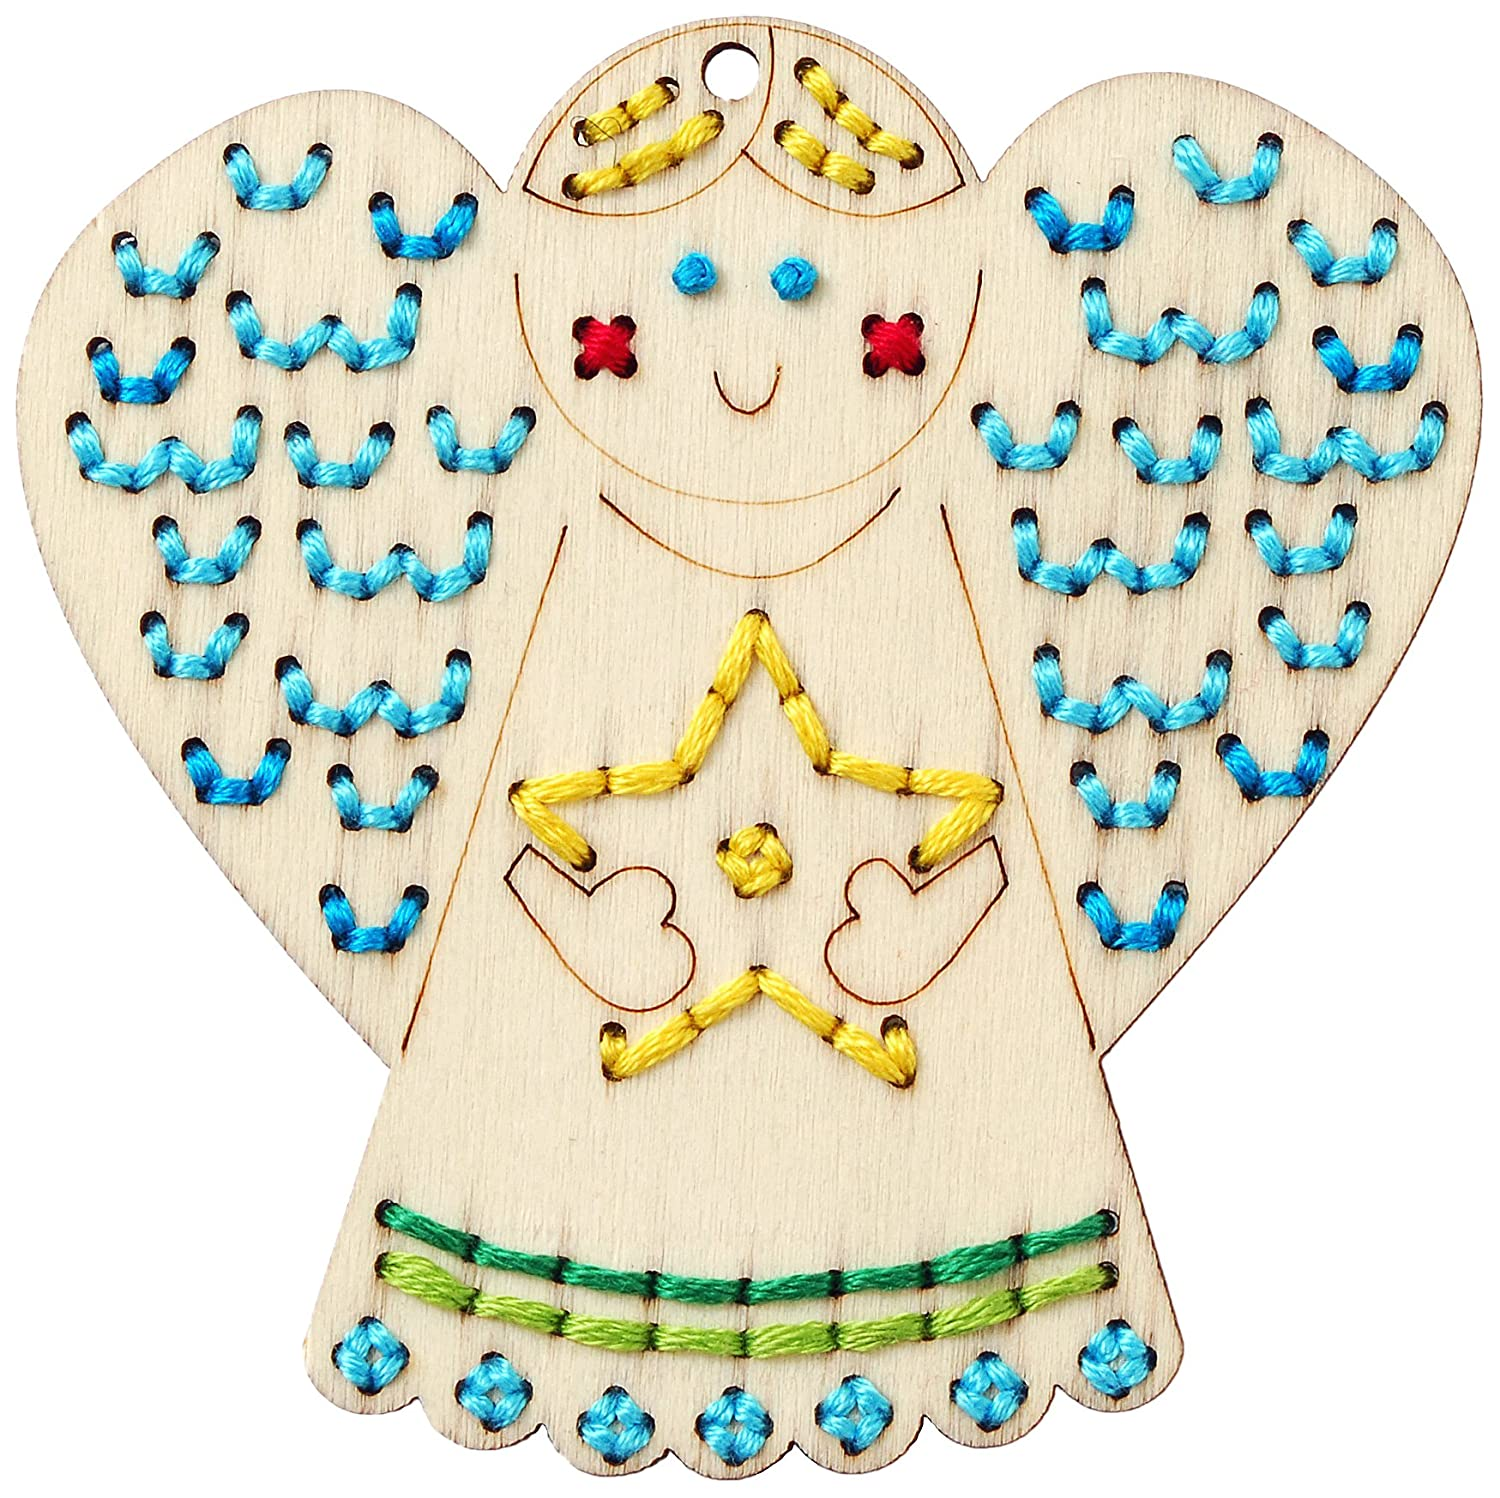 Wood stitch-able festive Christmas owl ornament to make easy cute craft project